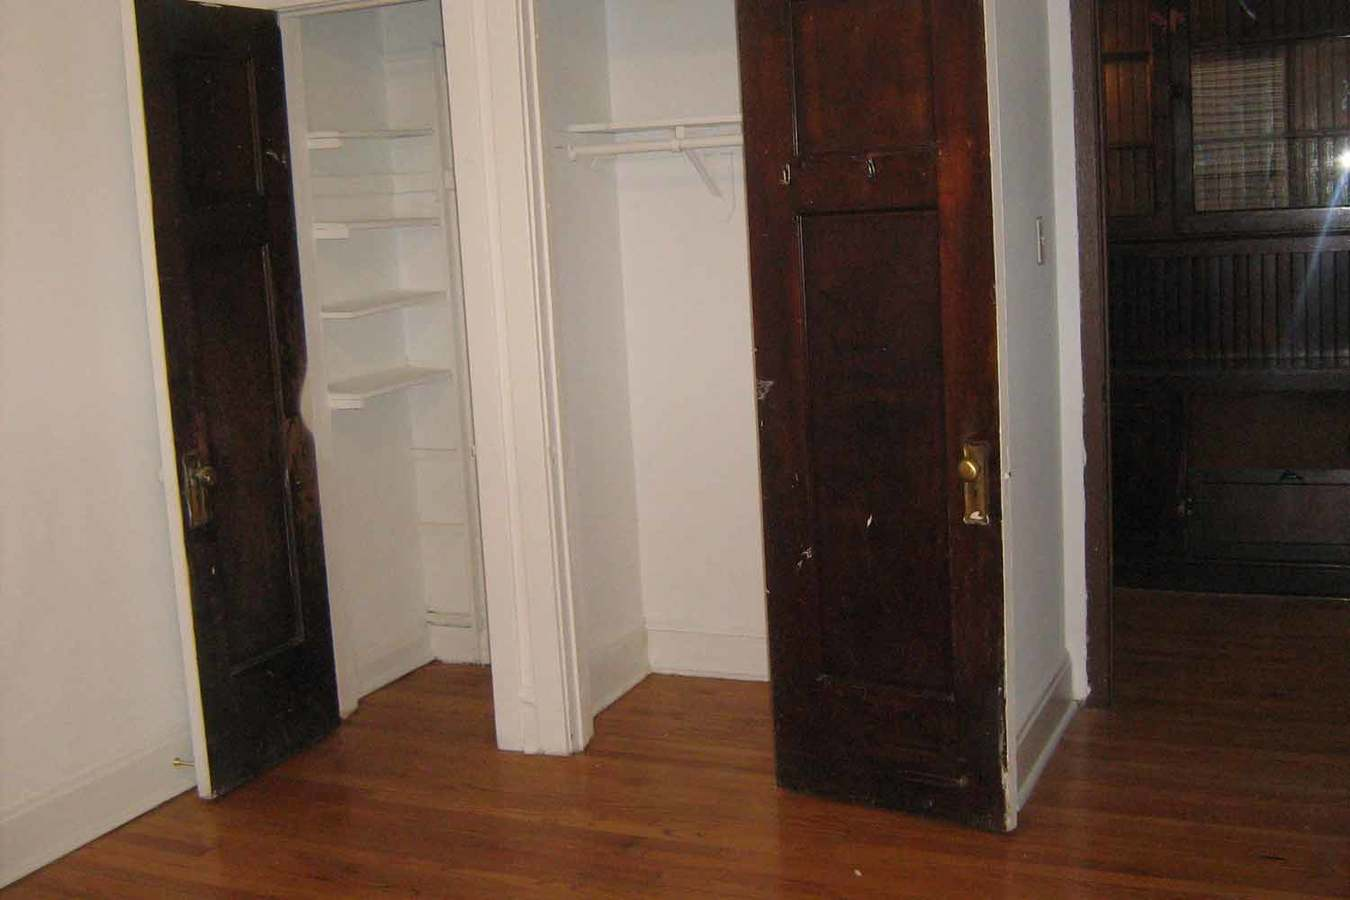 5 Bedrooms 2 Bathrooms Apartment for rent at 5218-5220 S. Kimbark Avenue in Chicago, IL